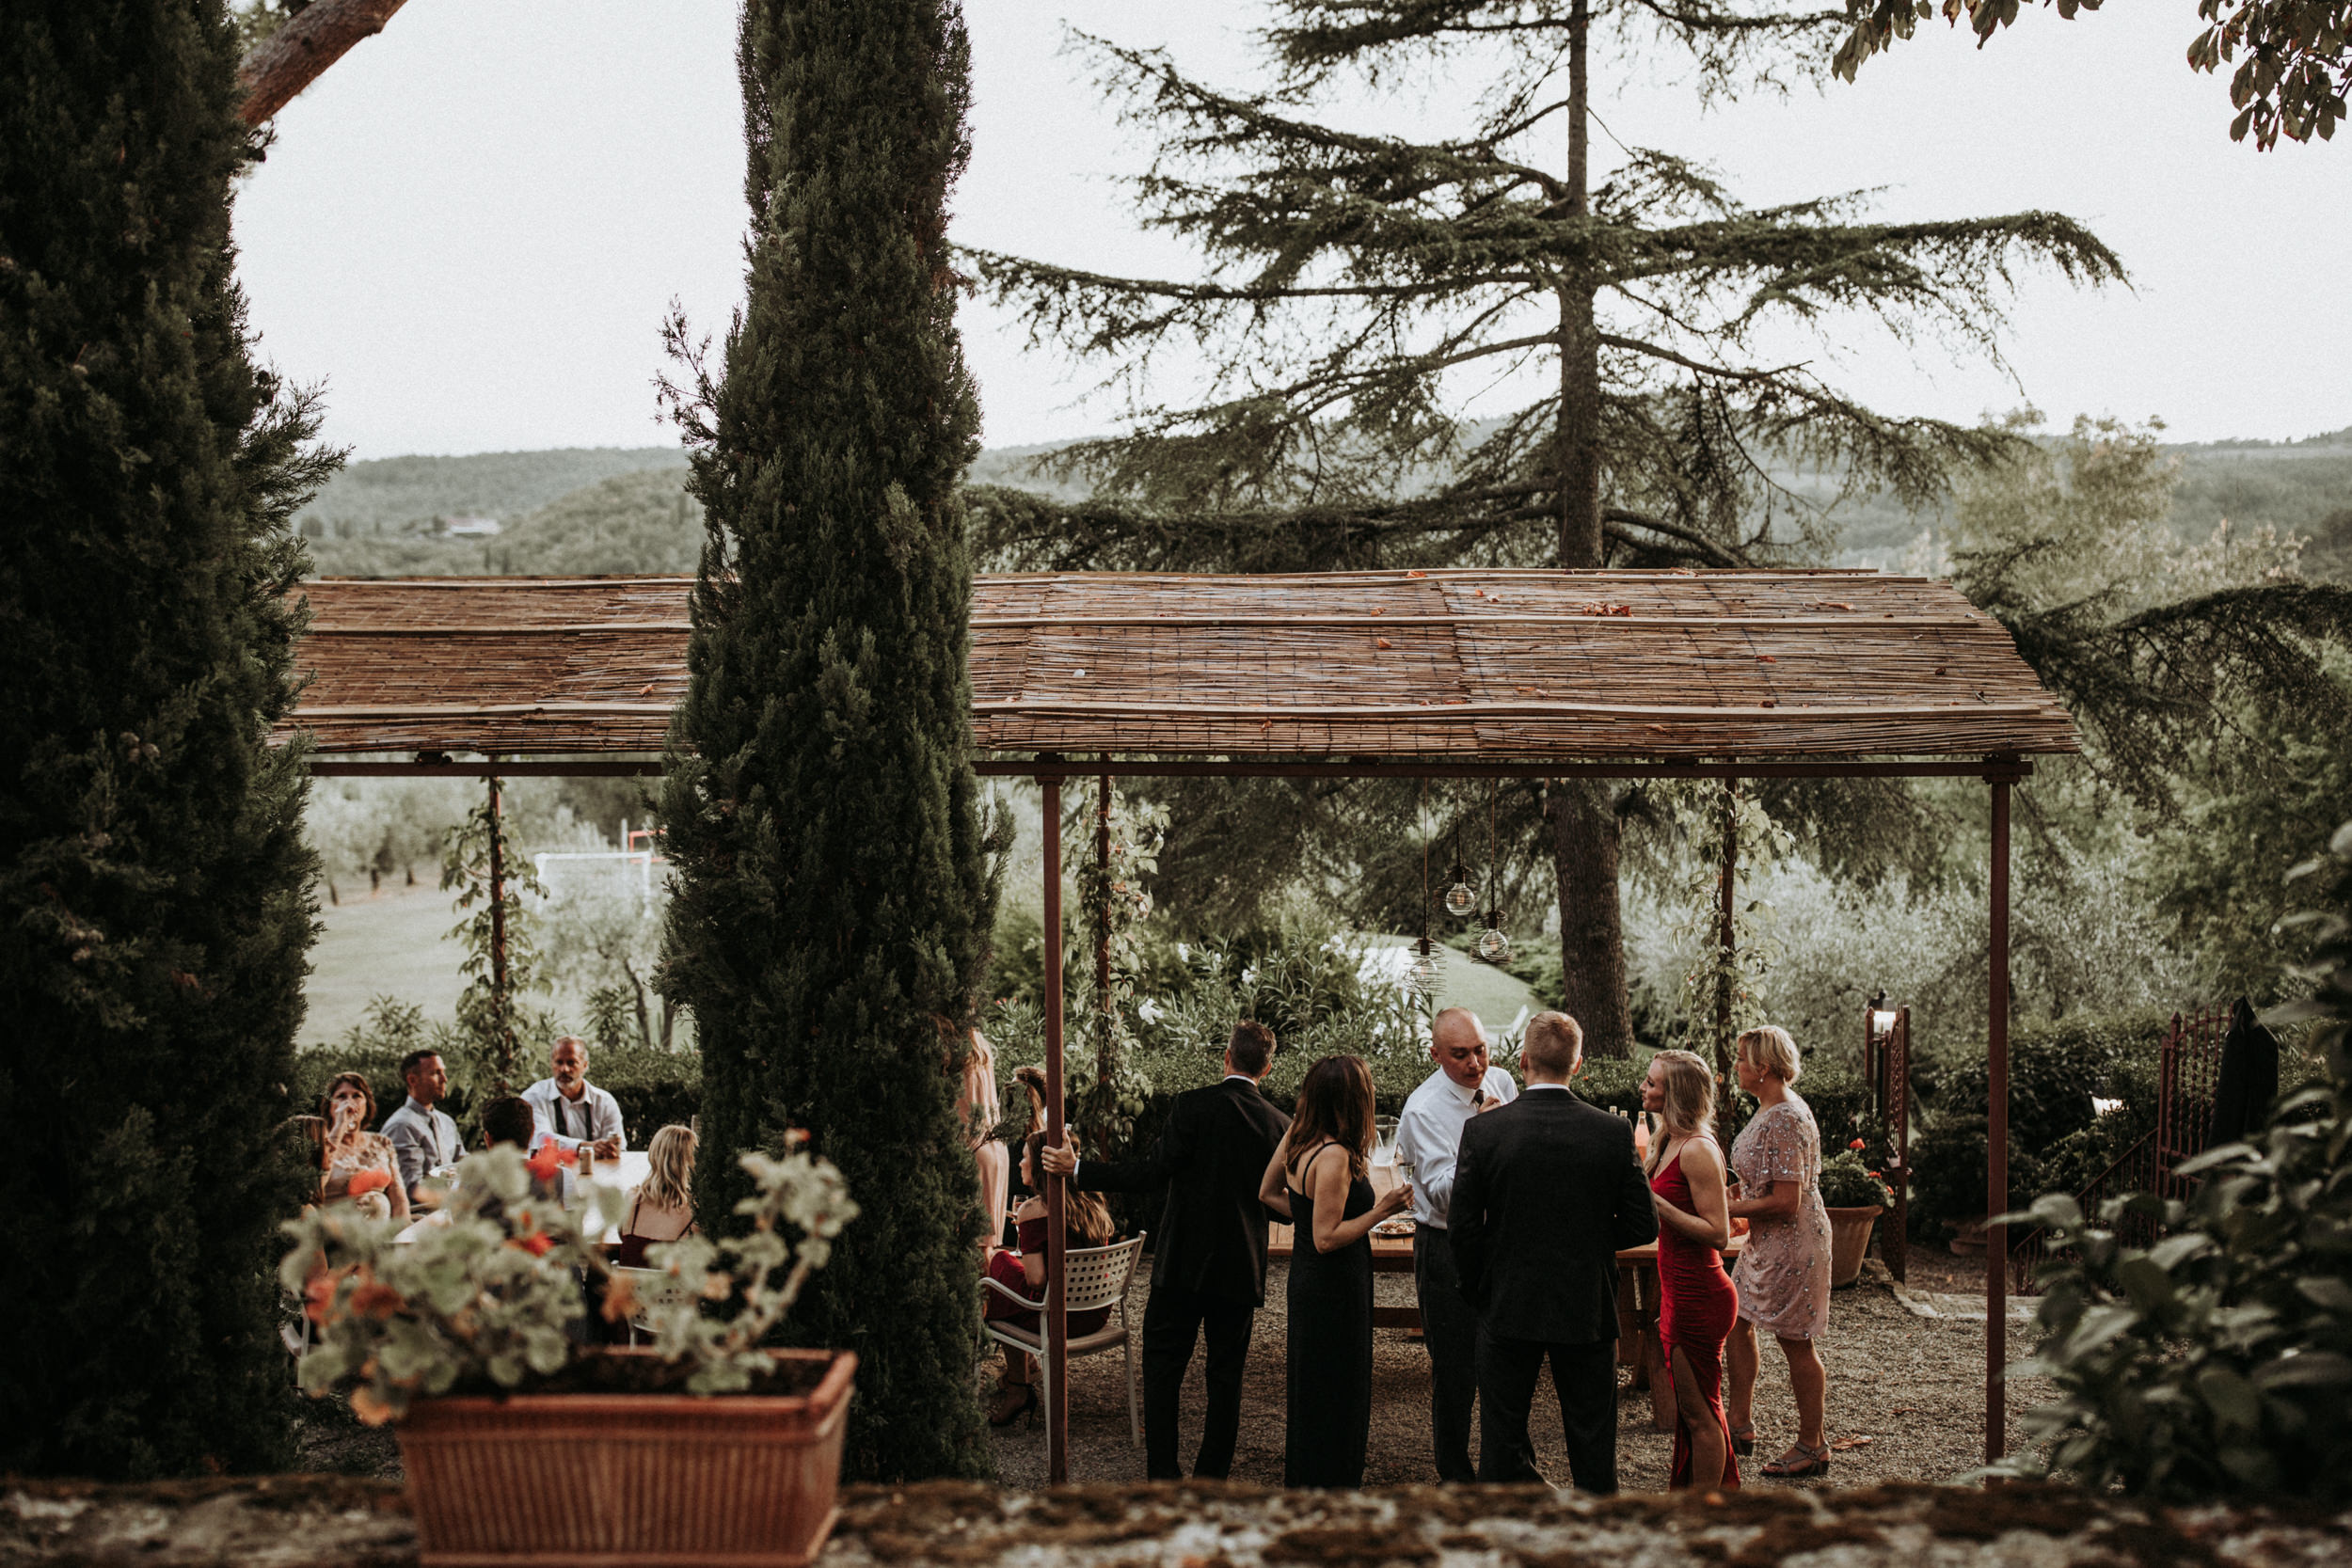 dm_photography_KW_Tuscanyweddingday_385